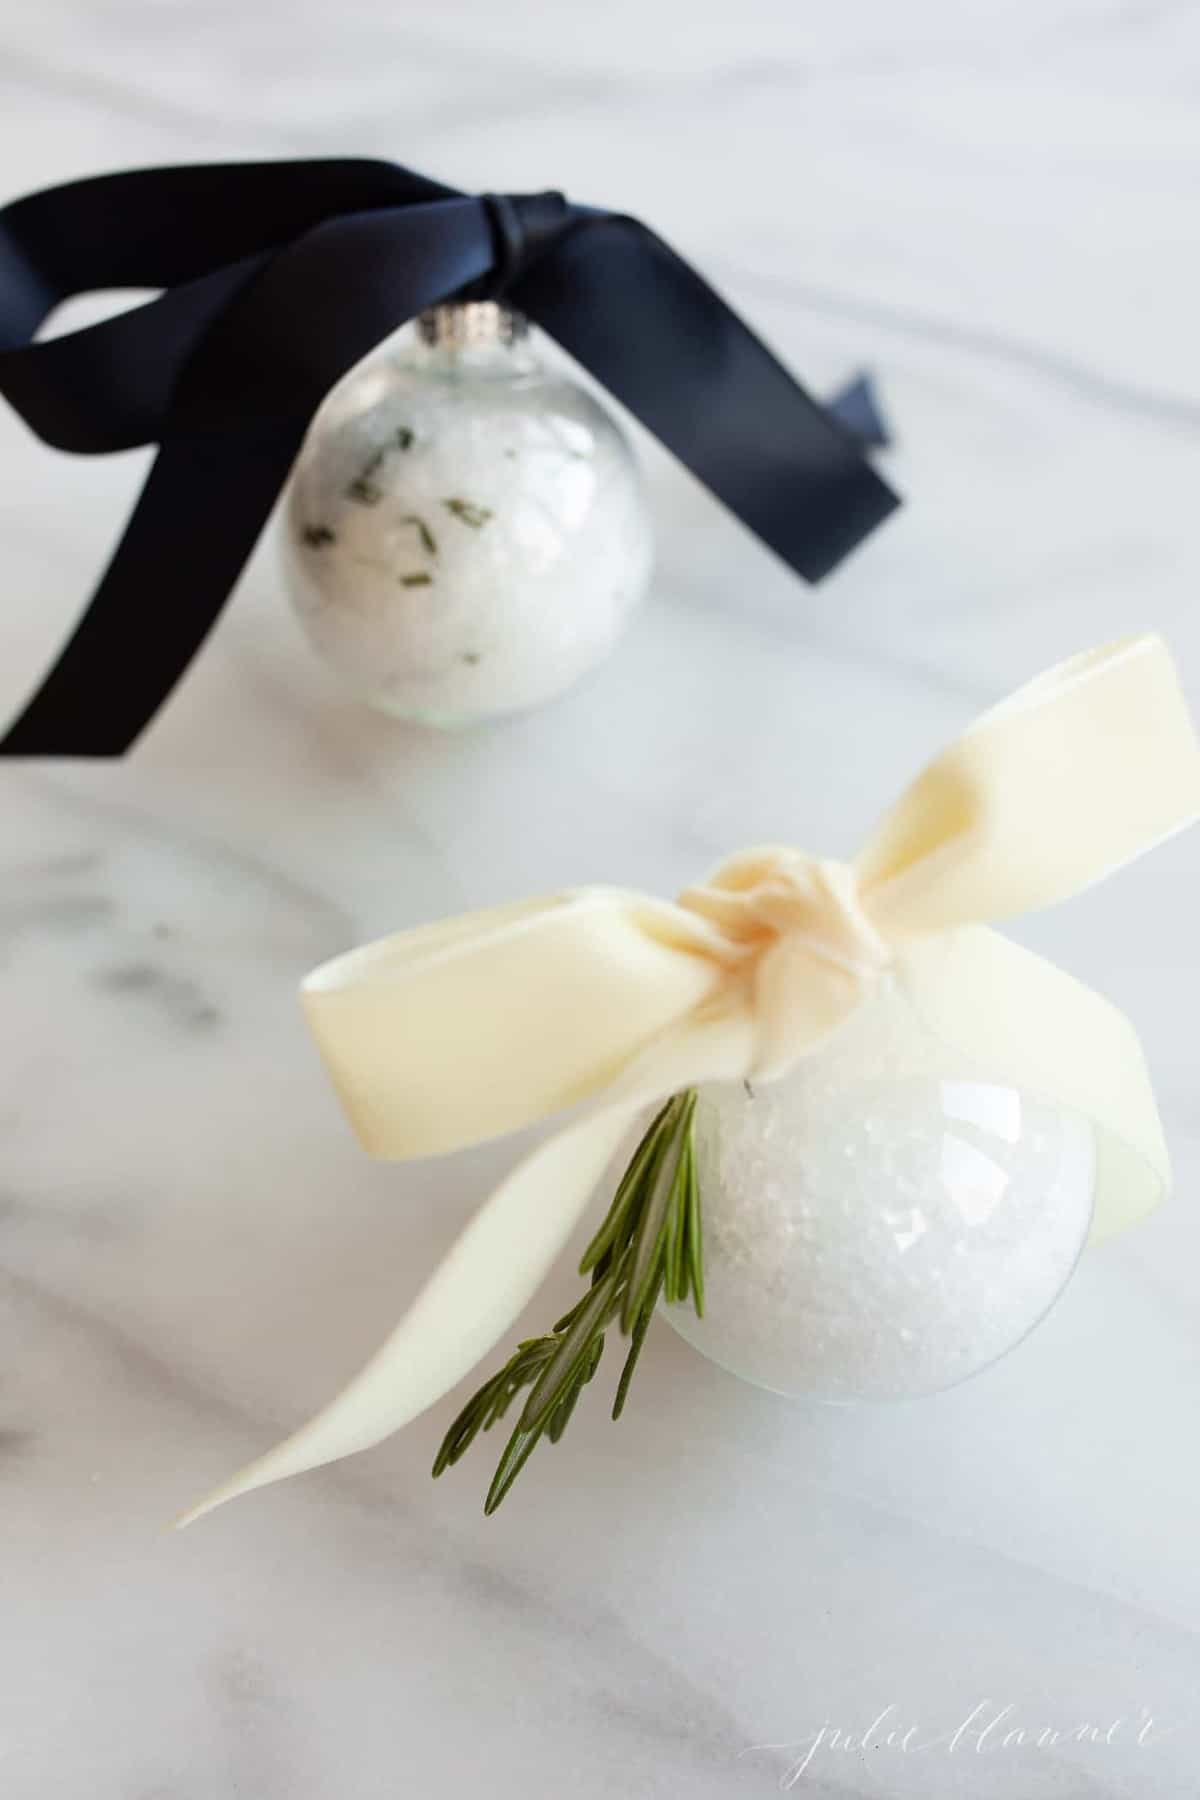 bath soak inside plastic ornaments tied with ribbon